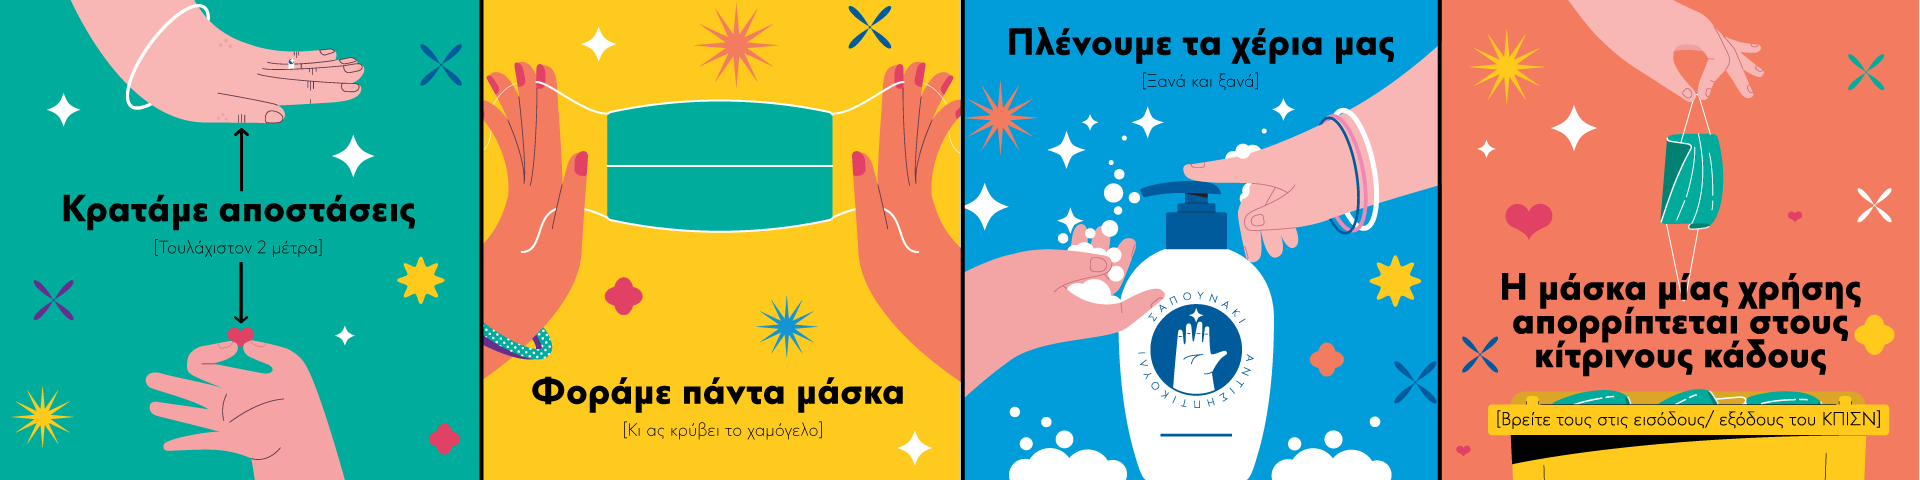 Safety measures for the protection of visitors & employees - Εικόνα